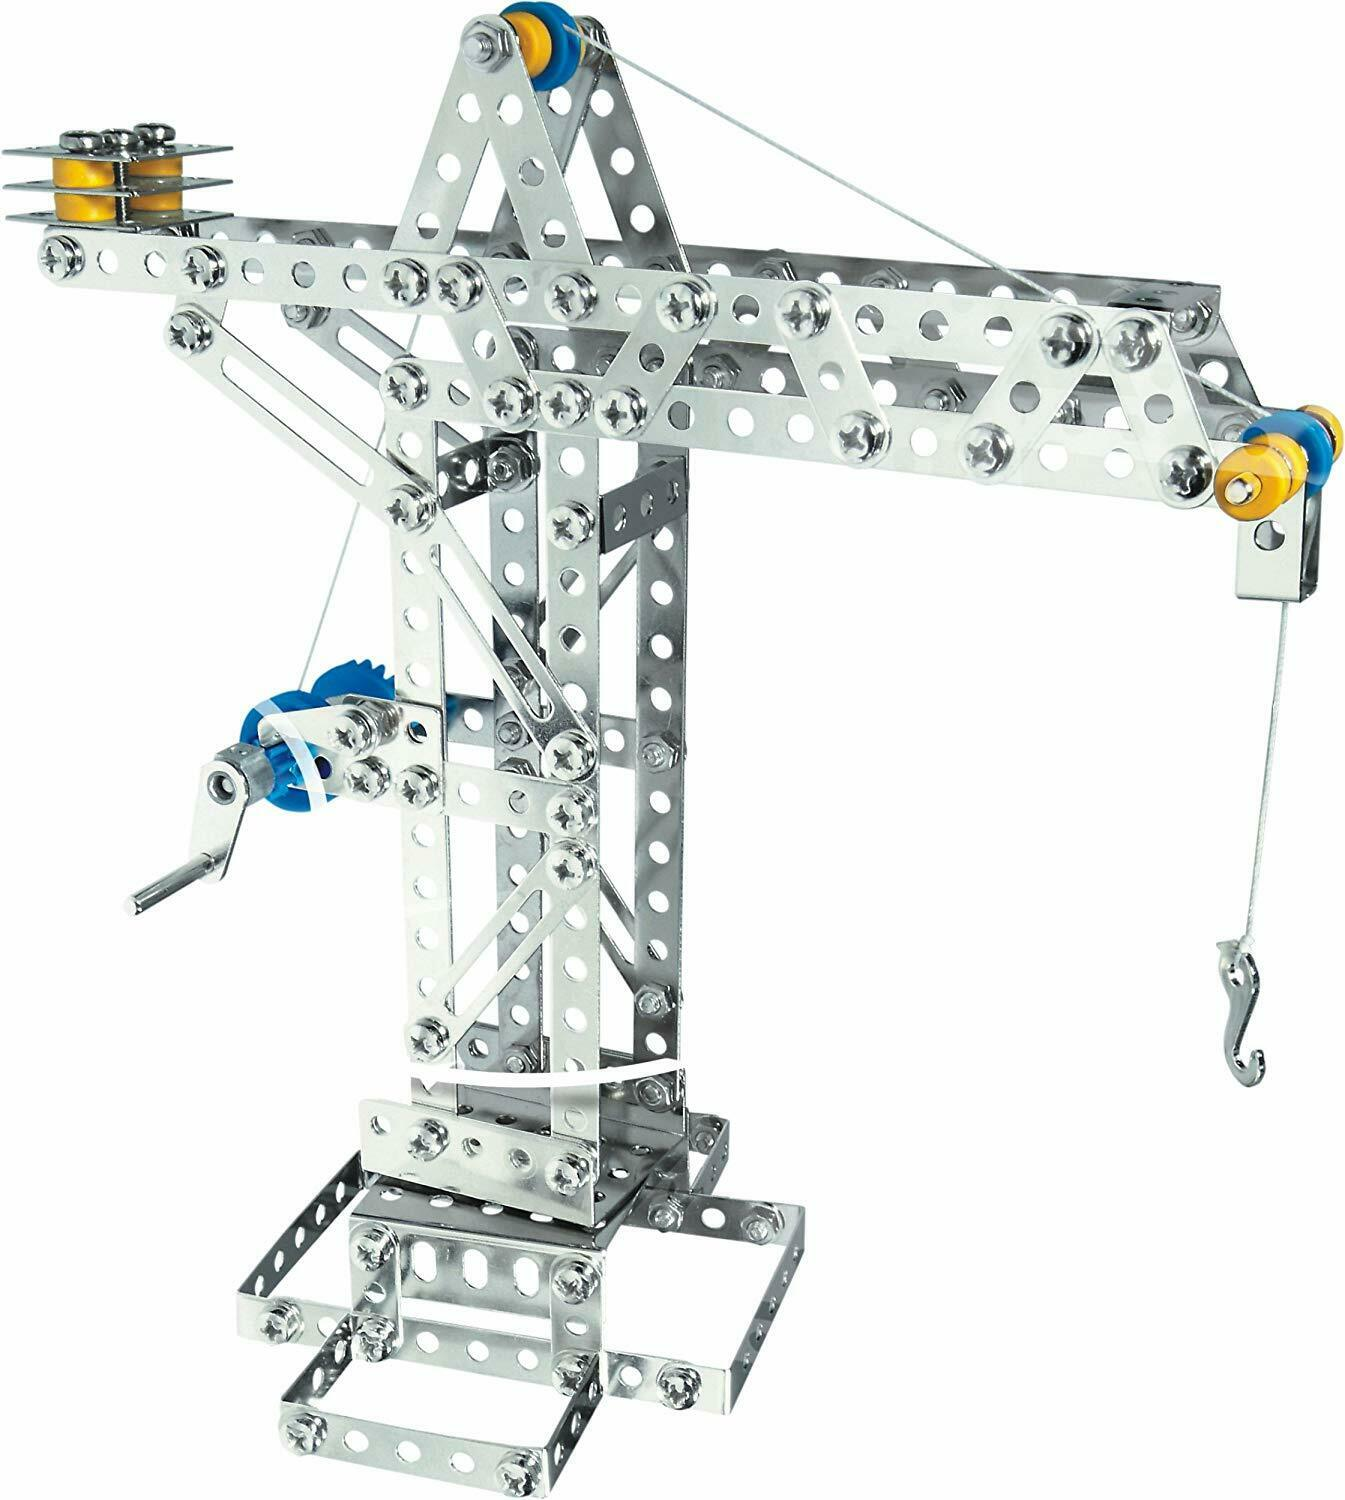 Eitech Crane and Windmill Construction Set and Educational Toy